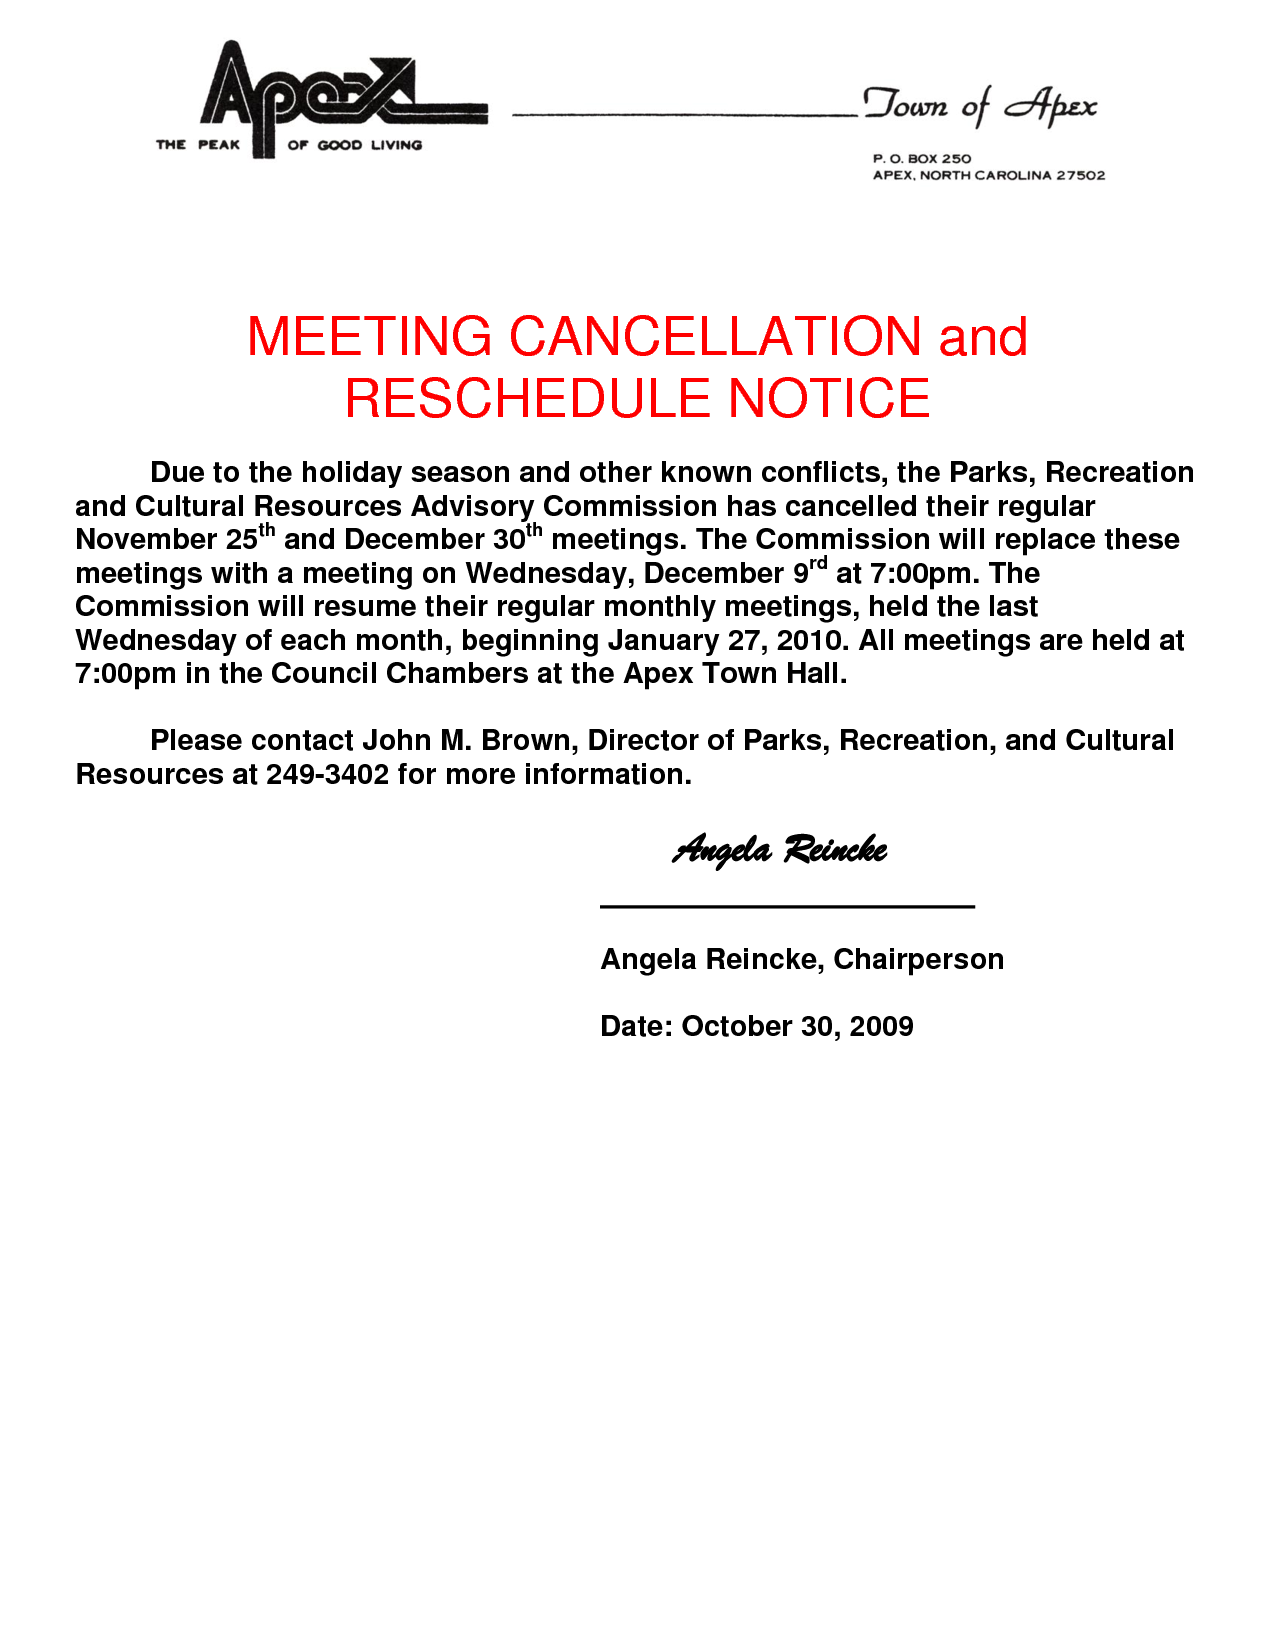 Cancellation notice template invitation templates cancellation cancellation letter meeting request sample search results for missed appointment lettera calendar best free home design idea inspiration altavistaventures Images